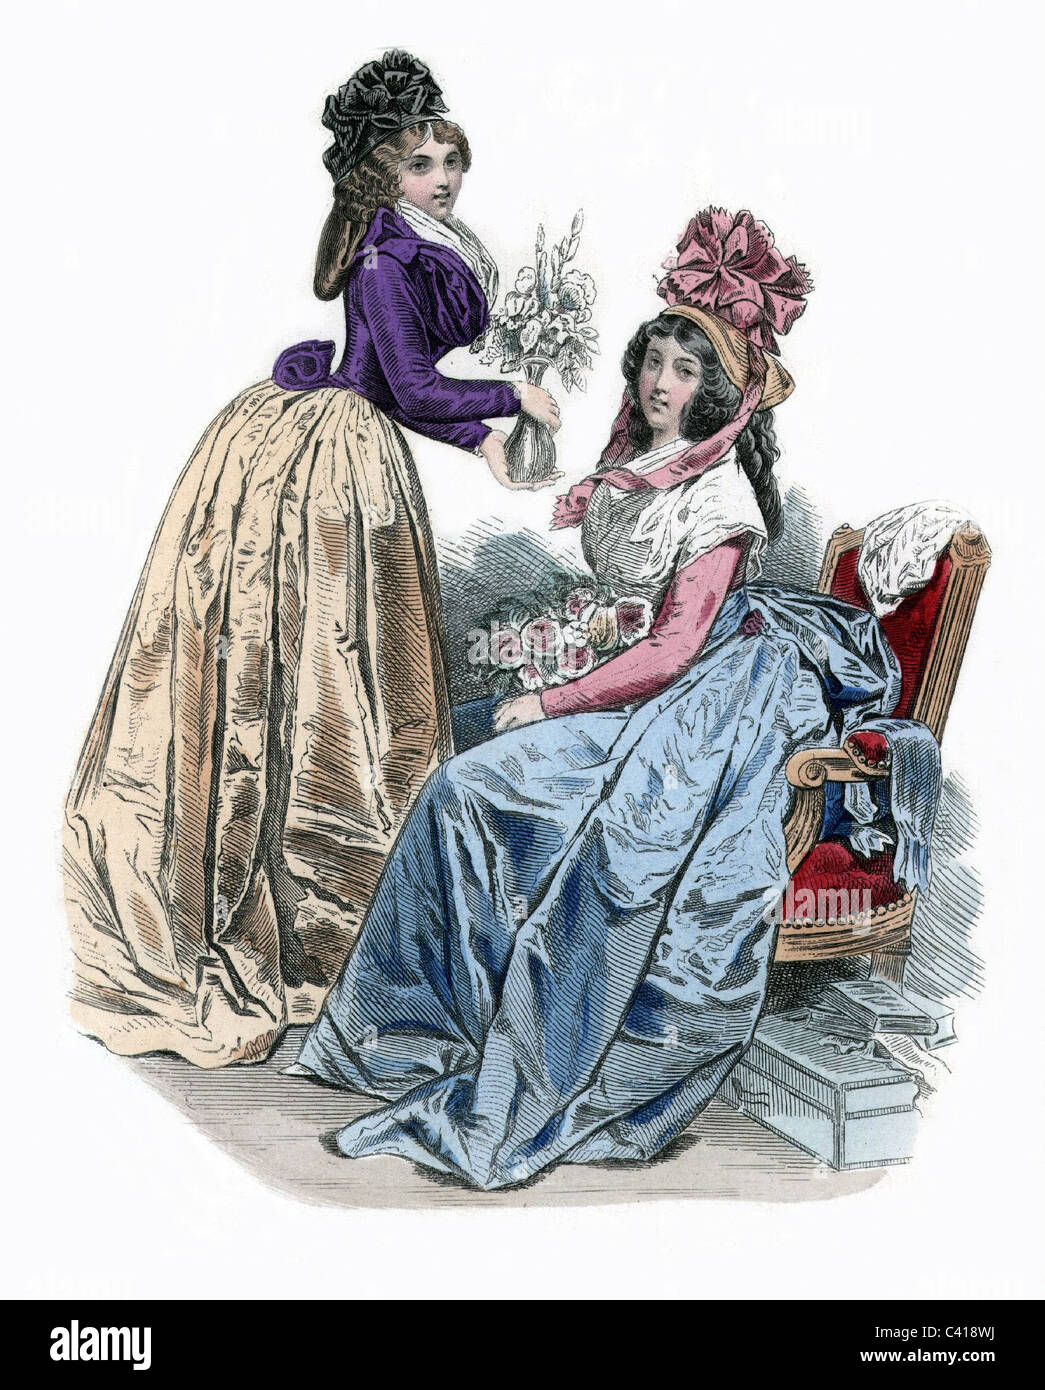 fashion ladie s fashion th century paris  stock photo fashion ladie s fashion 18th century paris 1790 coloured engraving 19th century historic historical women woma